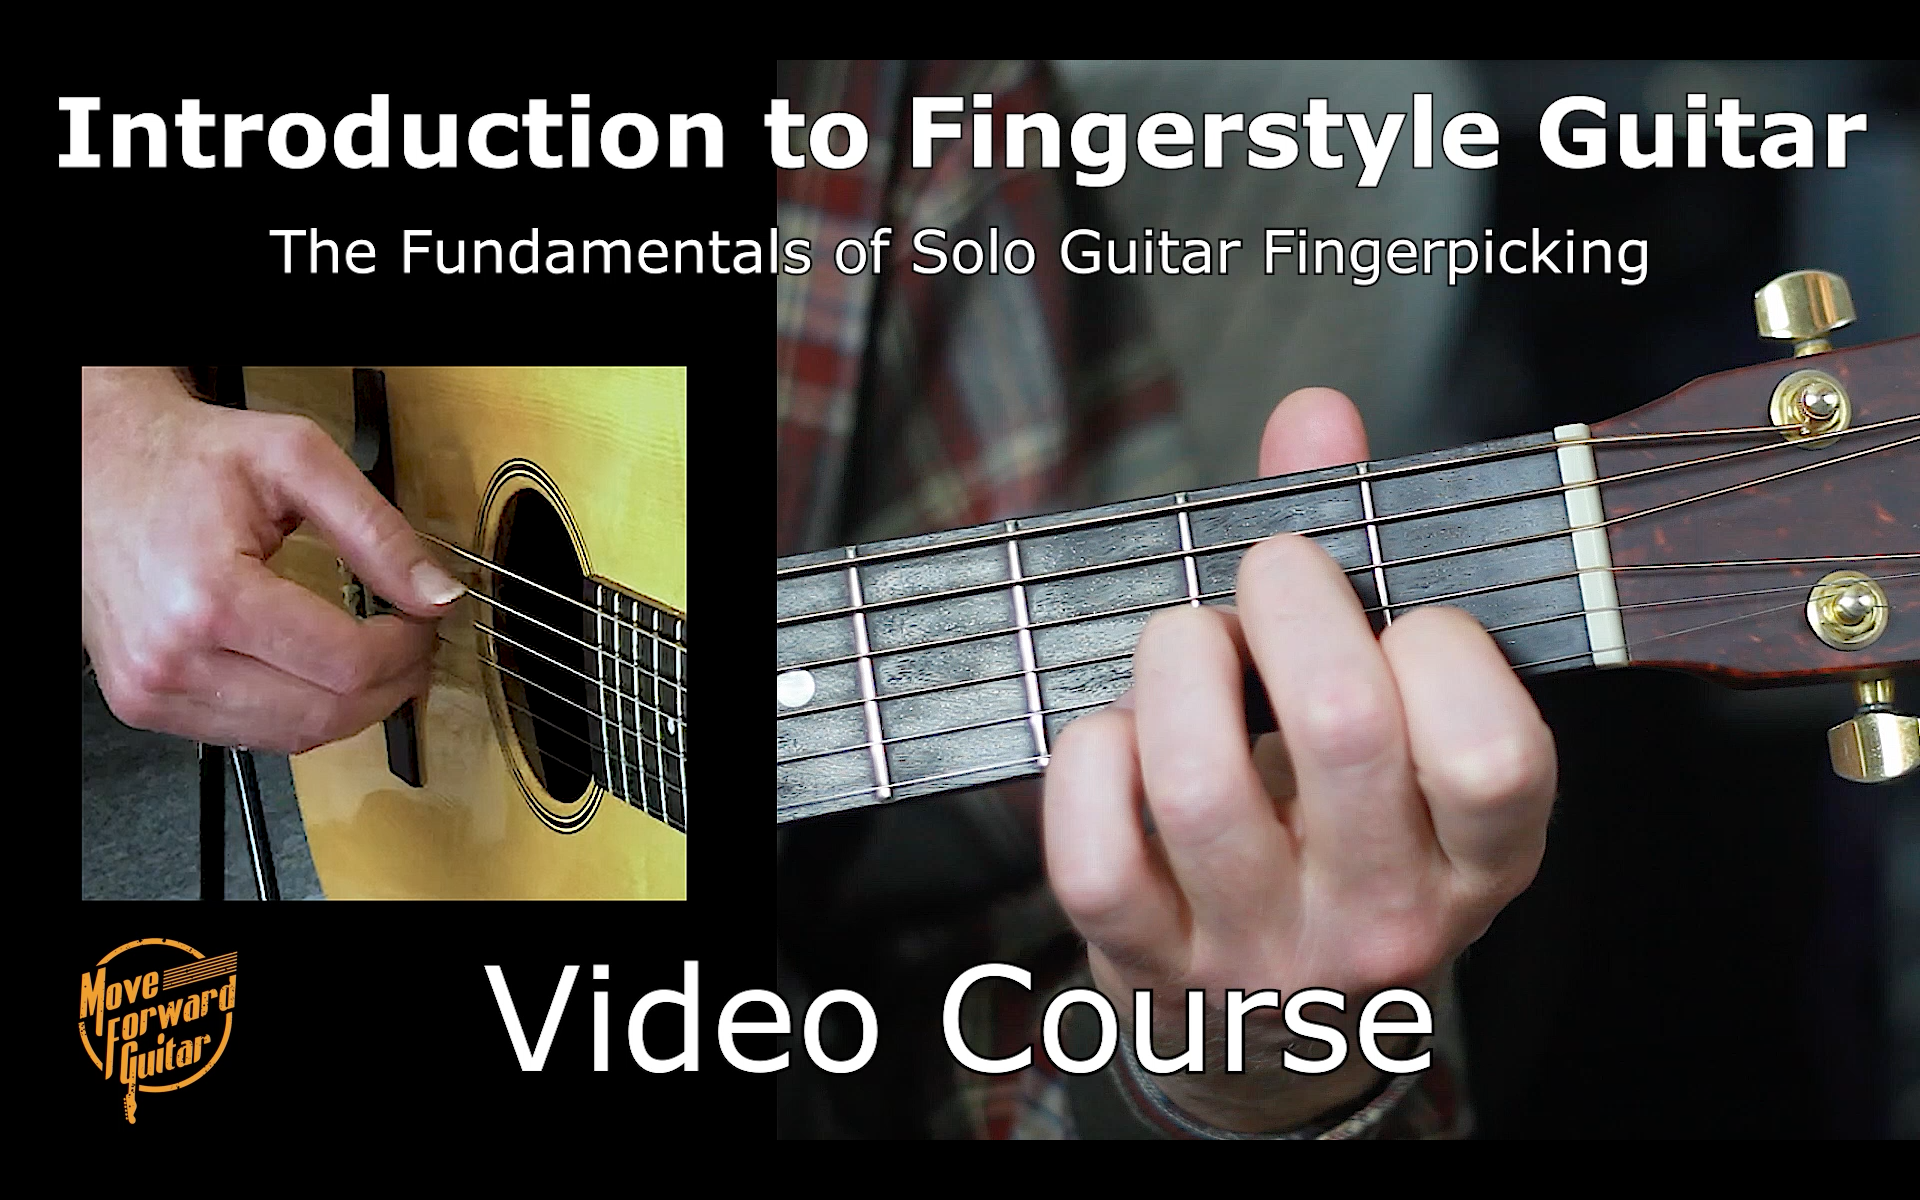 The Fundamentals of Solo Guitar Fingerpicking